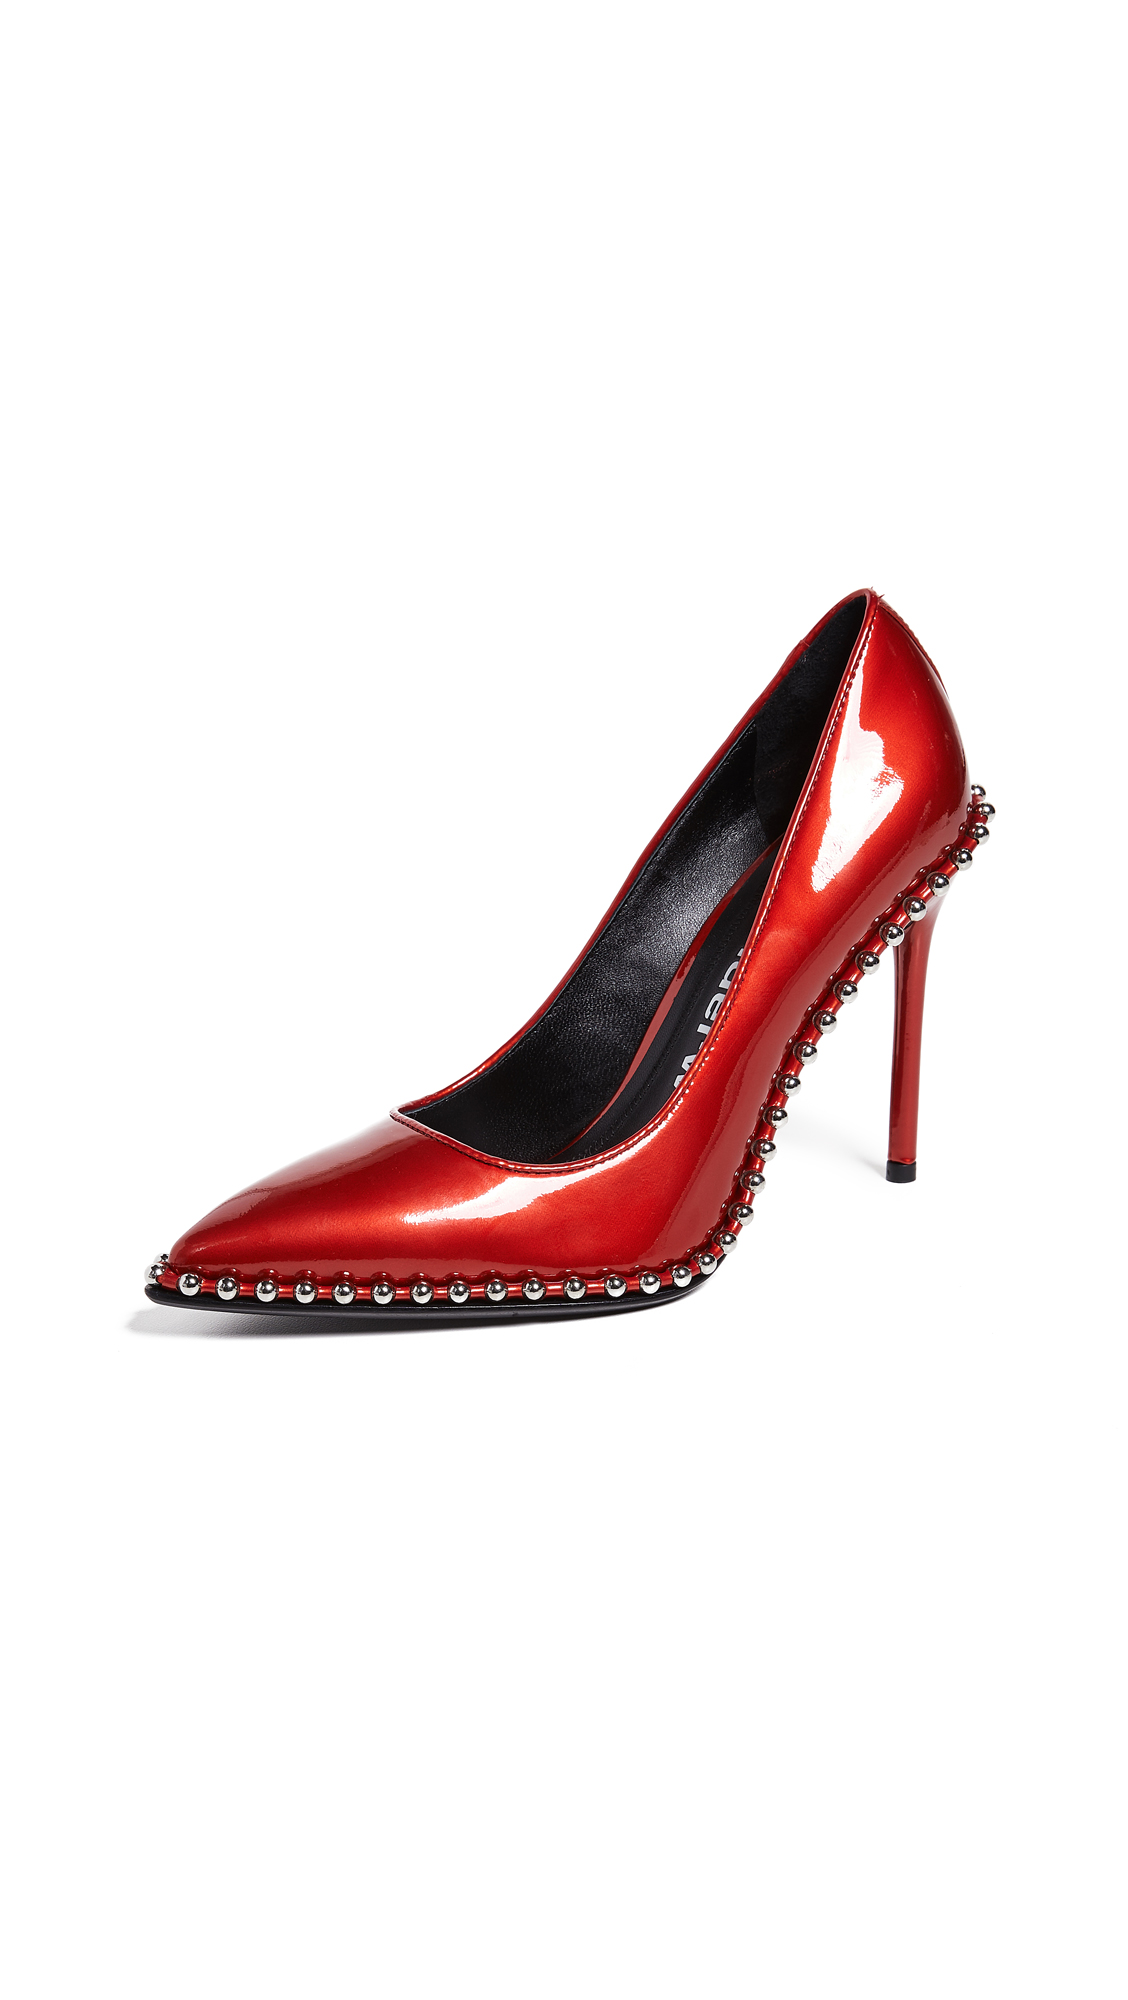 Alexander Wang Rie High Heel Pumps - Red